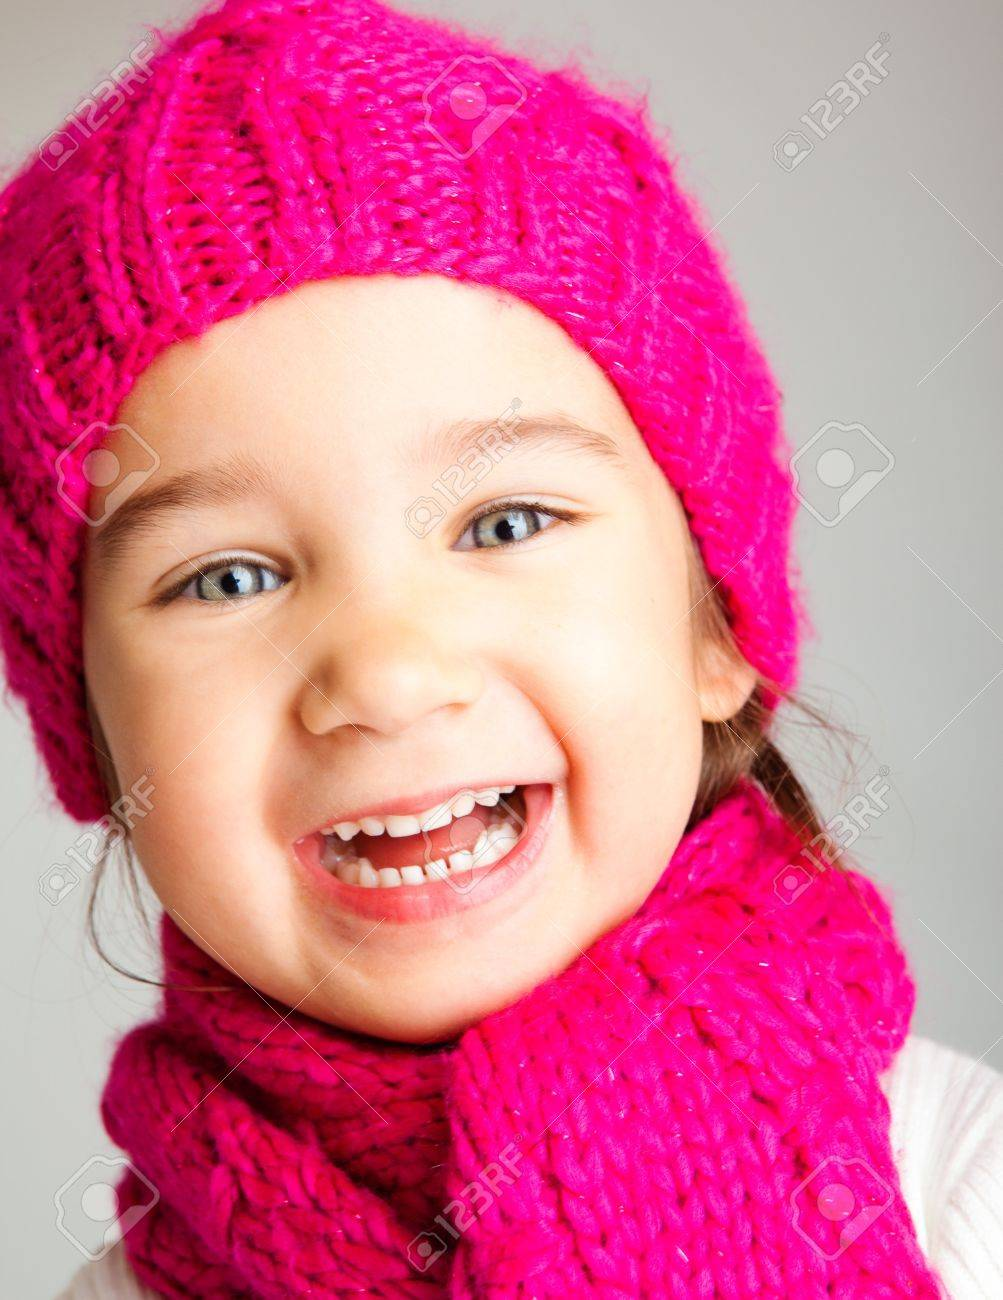 Excited preschool girl in knitted hat and scarf Stock Photo - 7955201